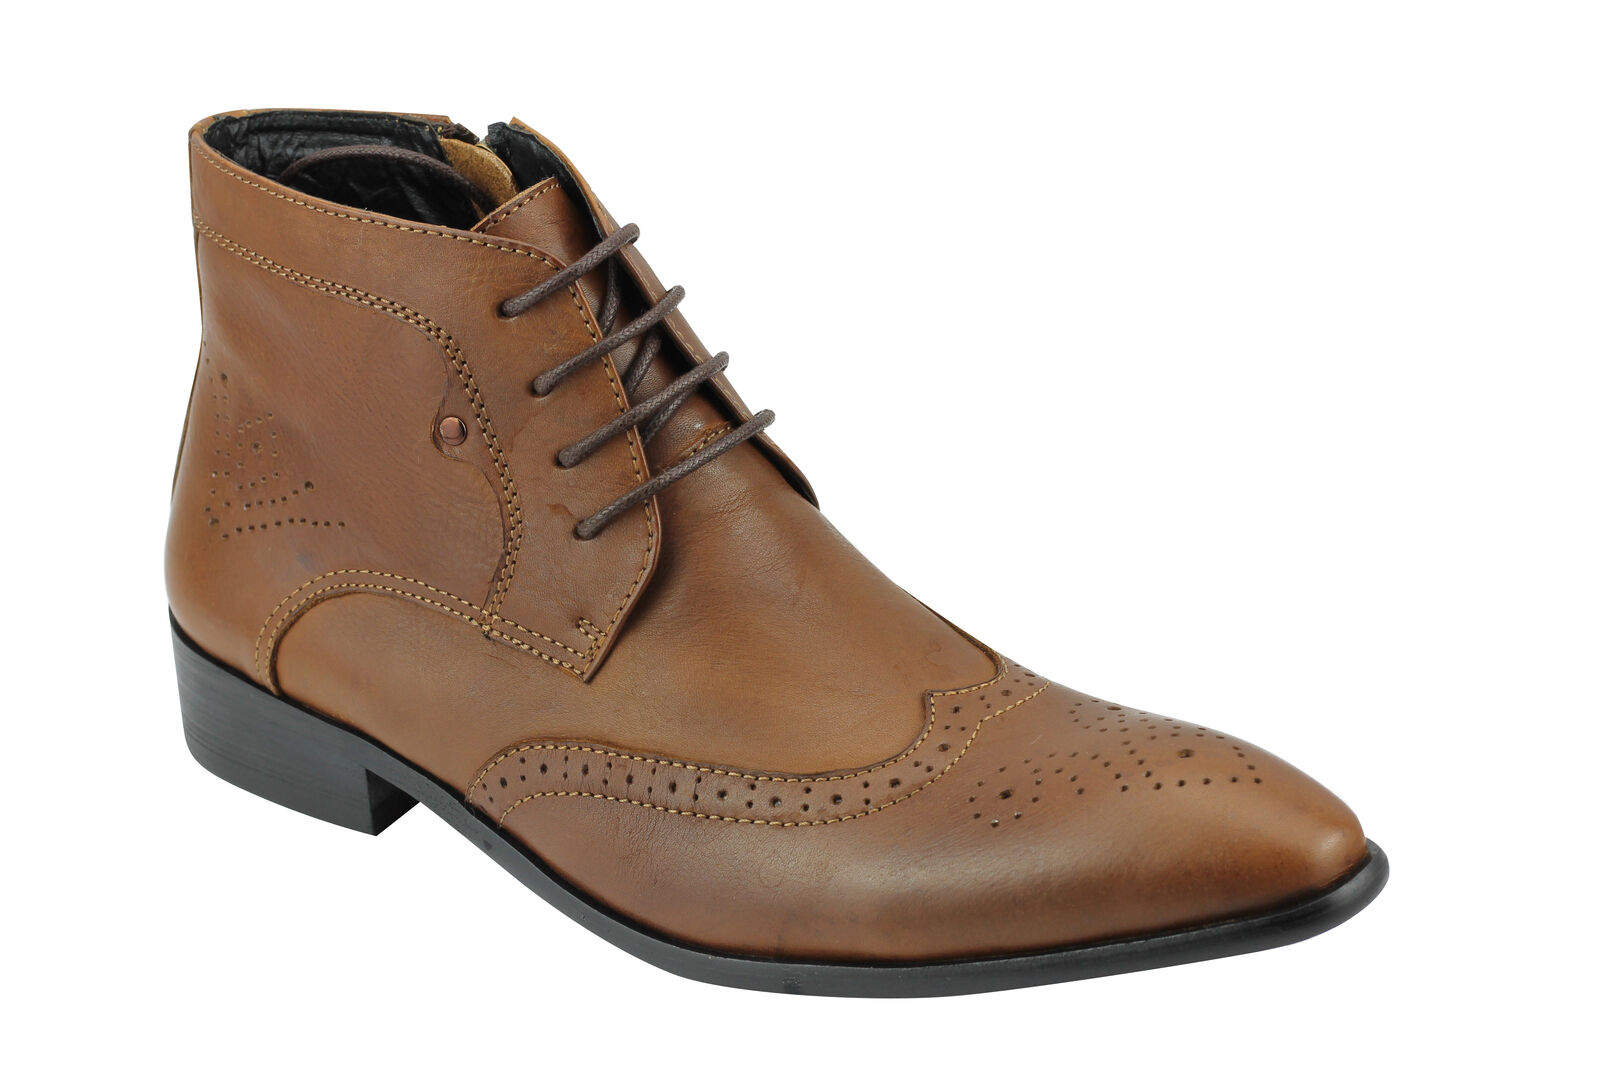 Hombre Real Leather Brogues botas botas botas Smart Formal Lace up & Zip Ankle Zapatos Talla 6 12 d52fdd